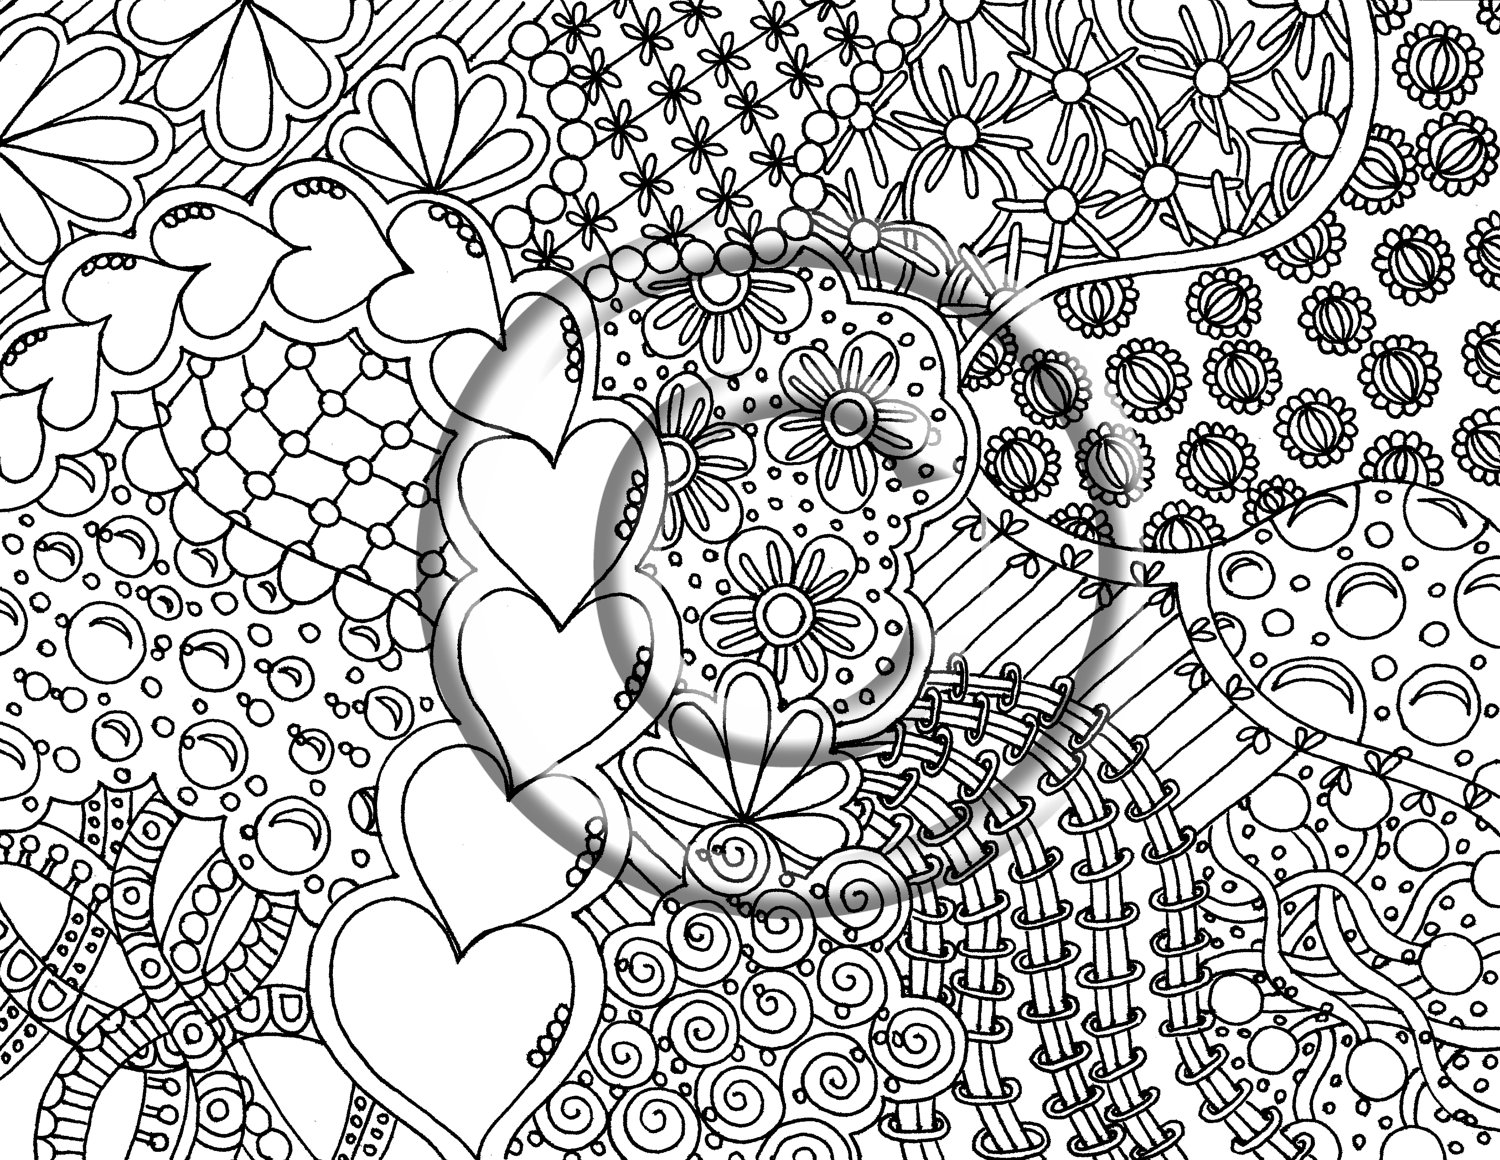 peace and love coloring pages - para colorear peace and love coloring pages com portal